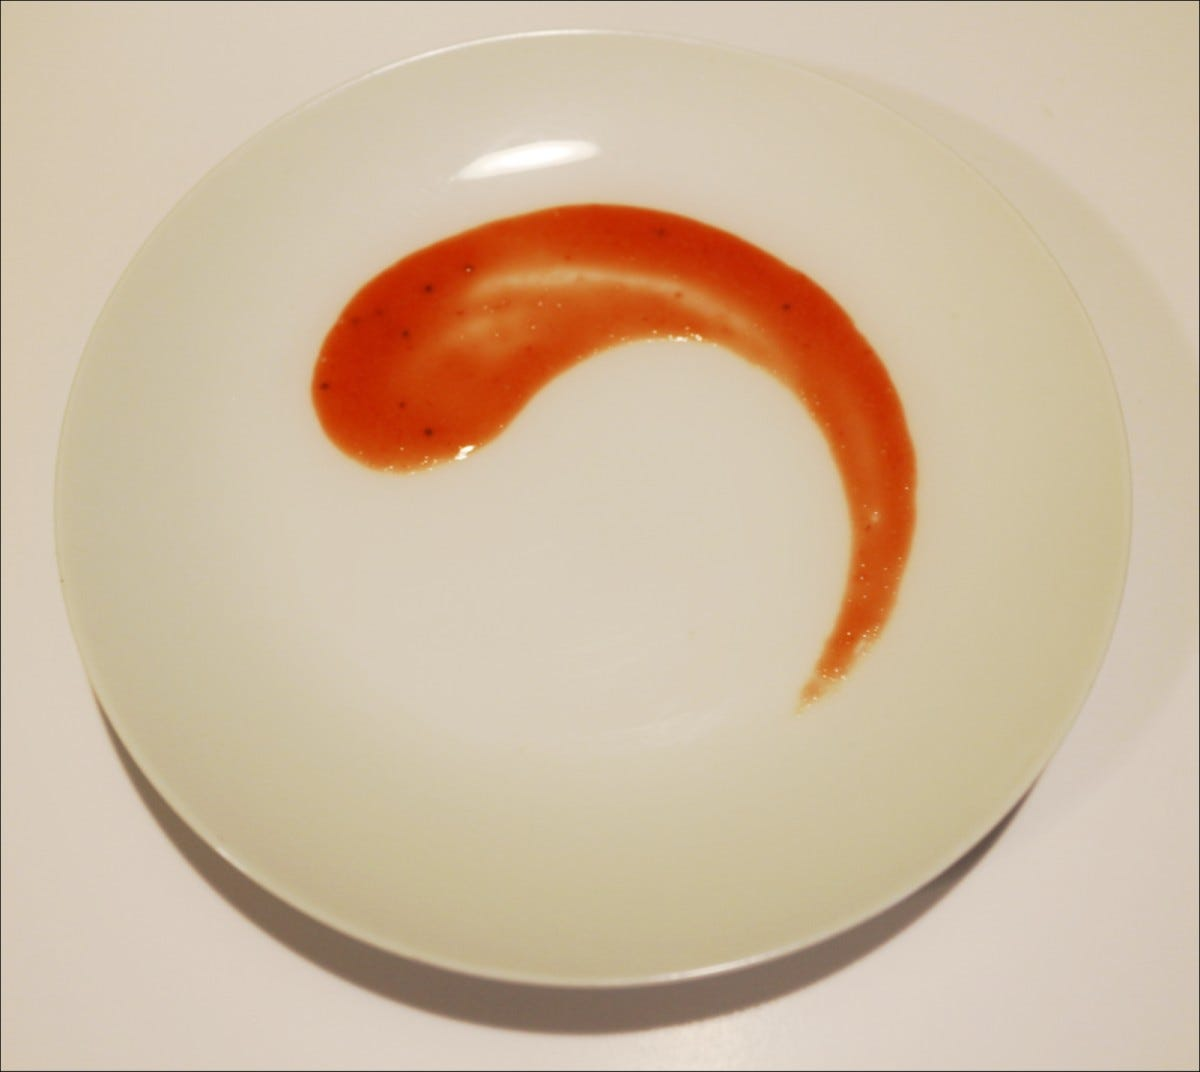 Strawberry puree design created by dragging the bottom of a spoon following the shape of a round, white plate.